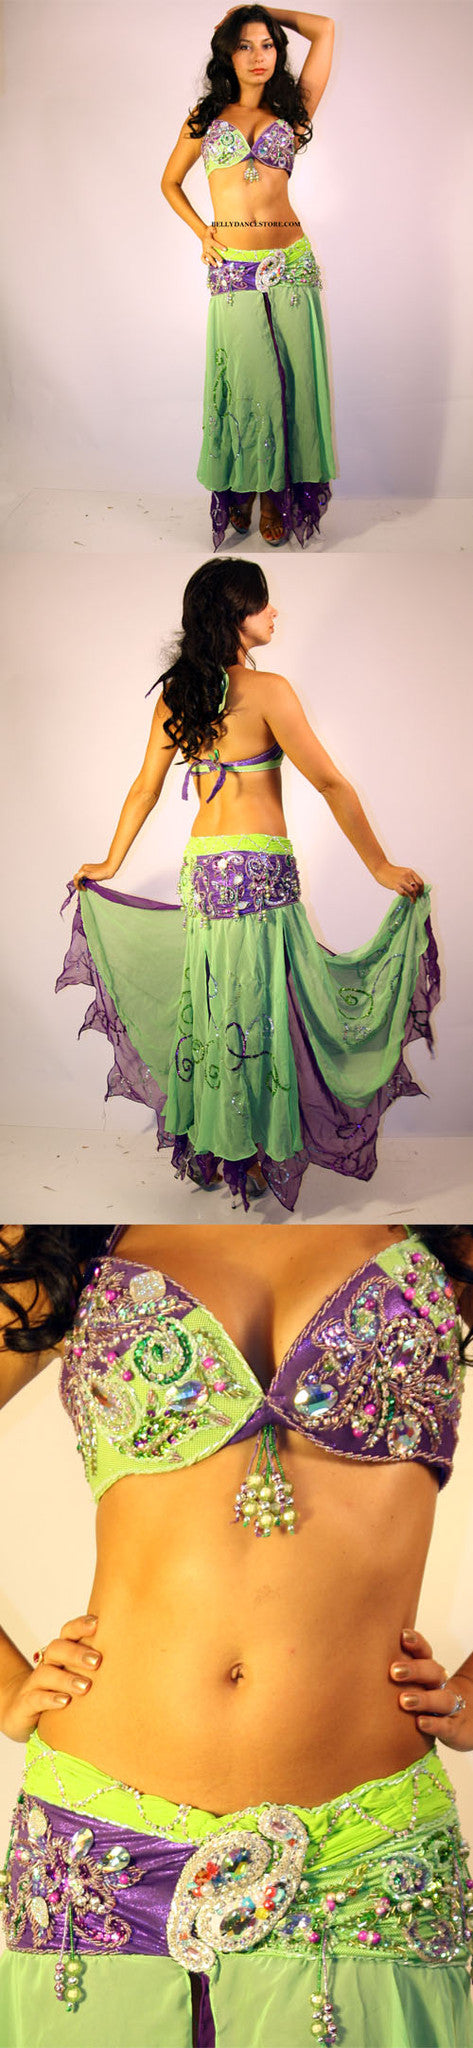 Mumtaz Two Piece Costume Clearance